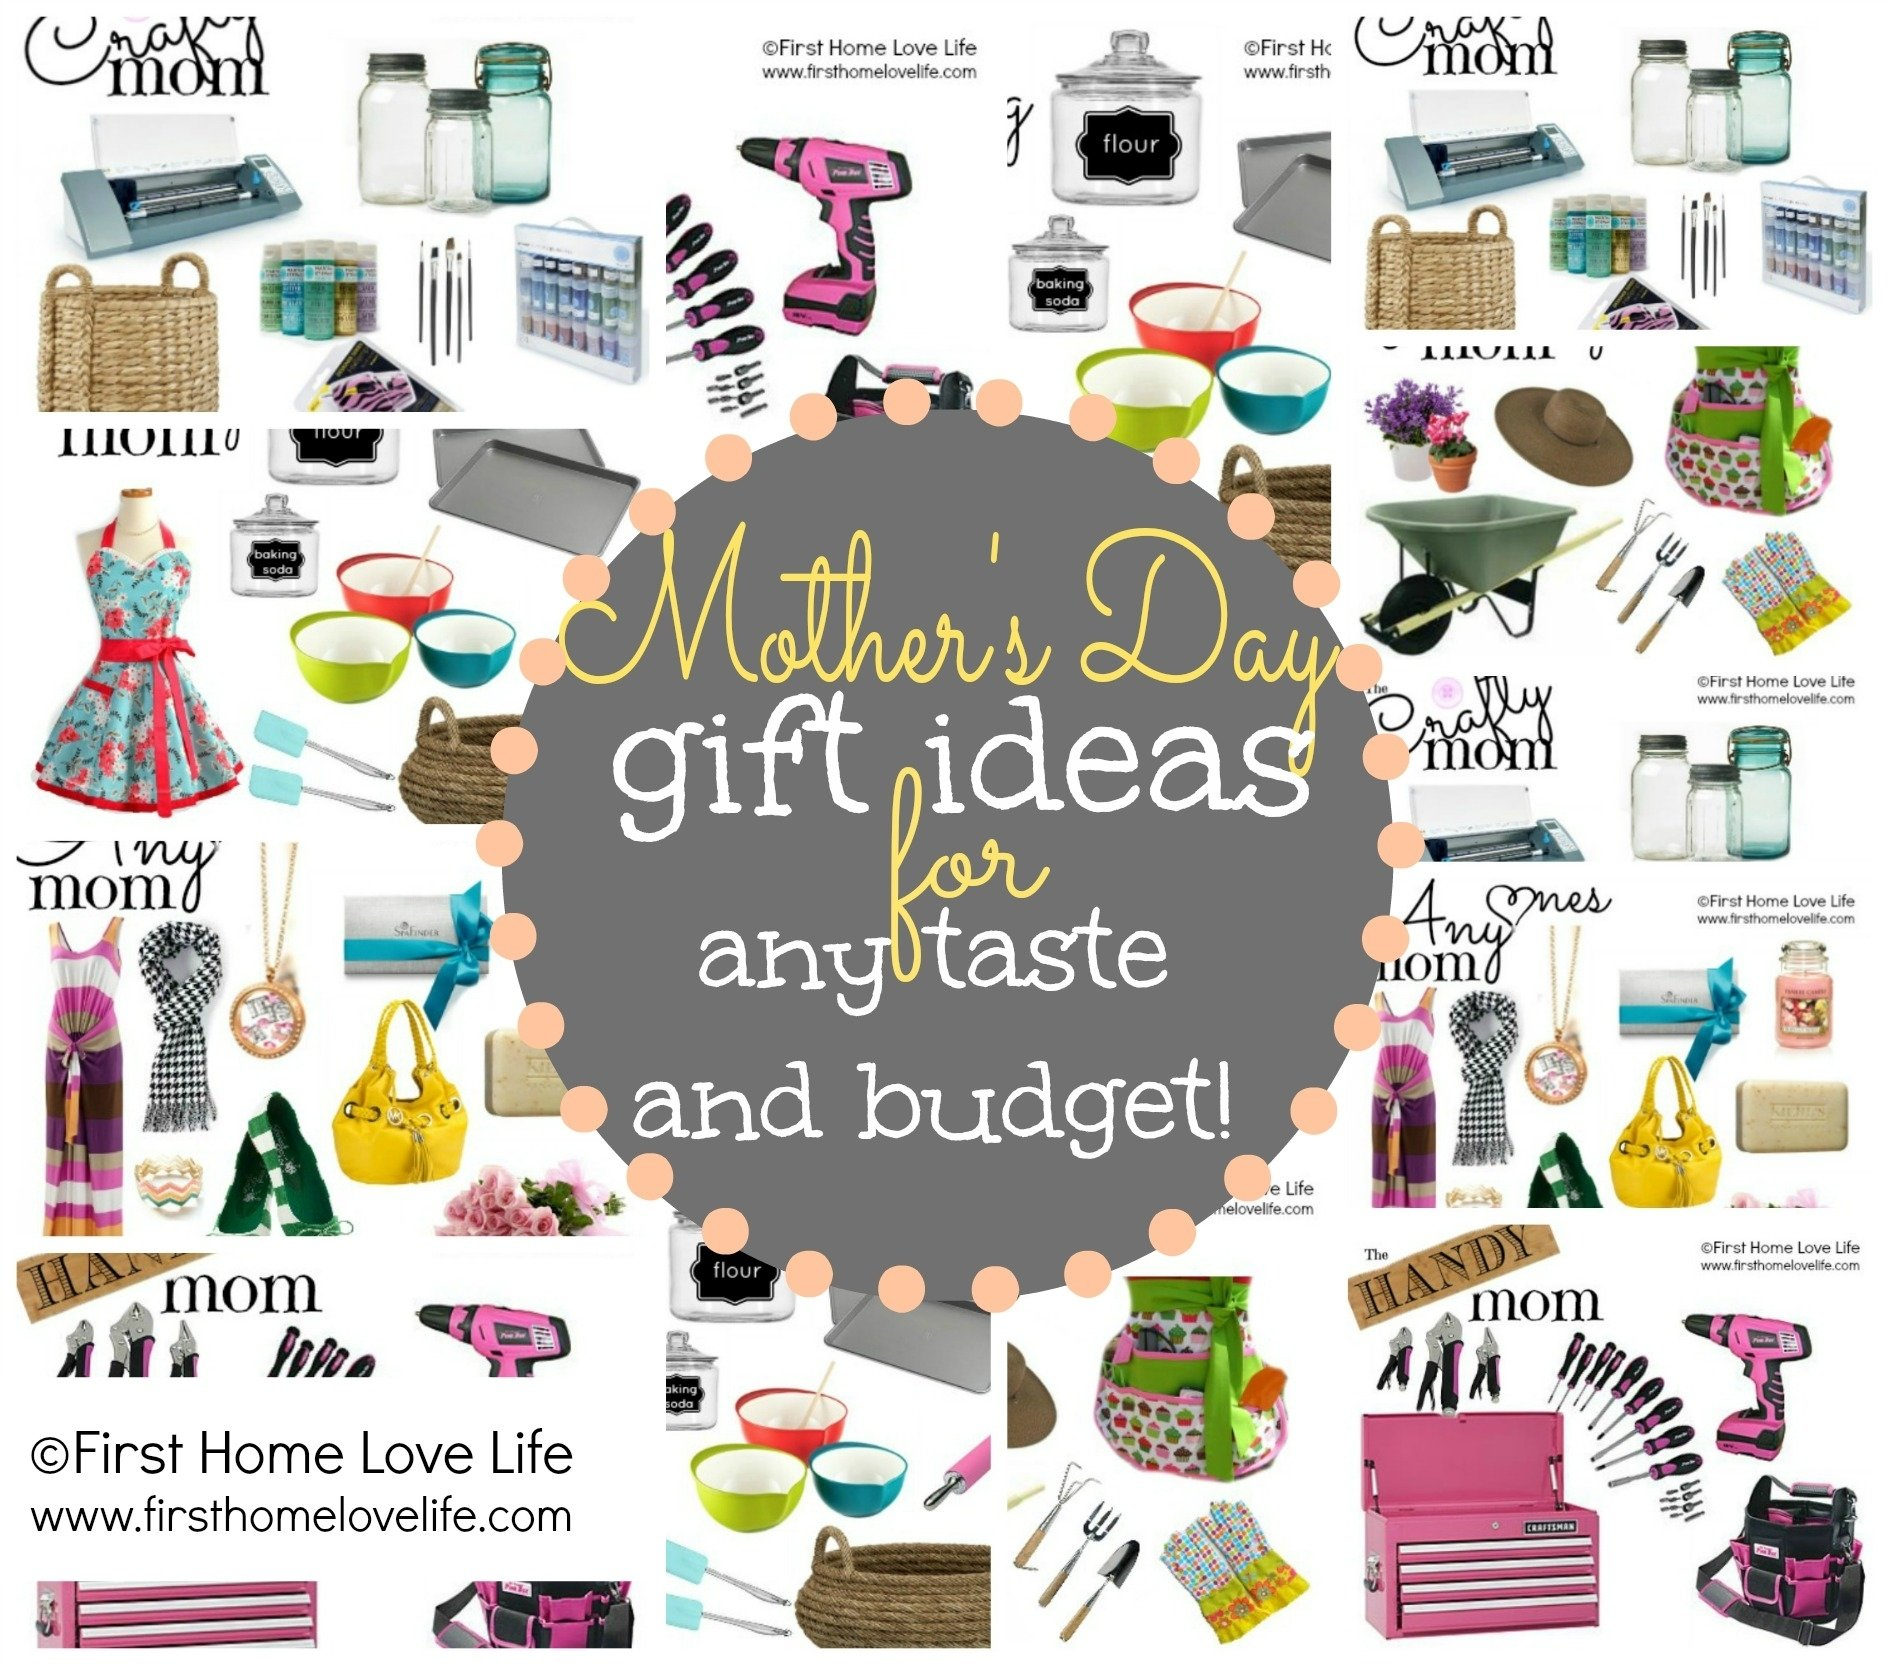 10 Attractive Ideas For Gifts For Mom mothers day gift ideas first home love life 1 2020